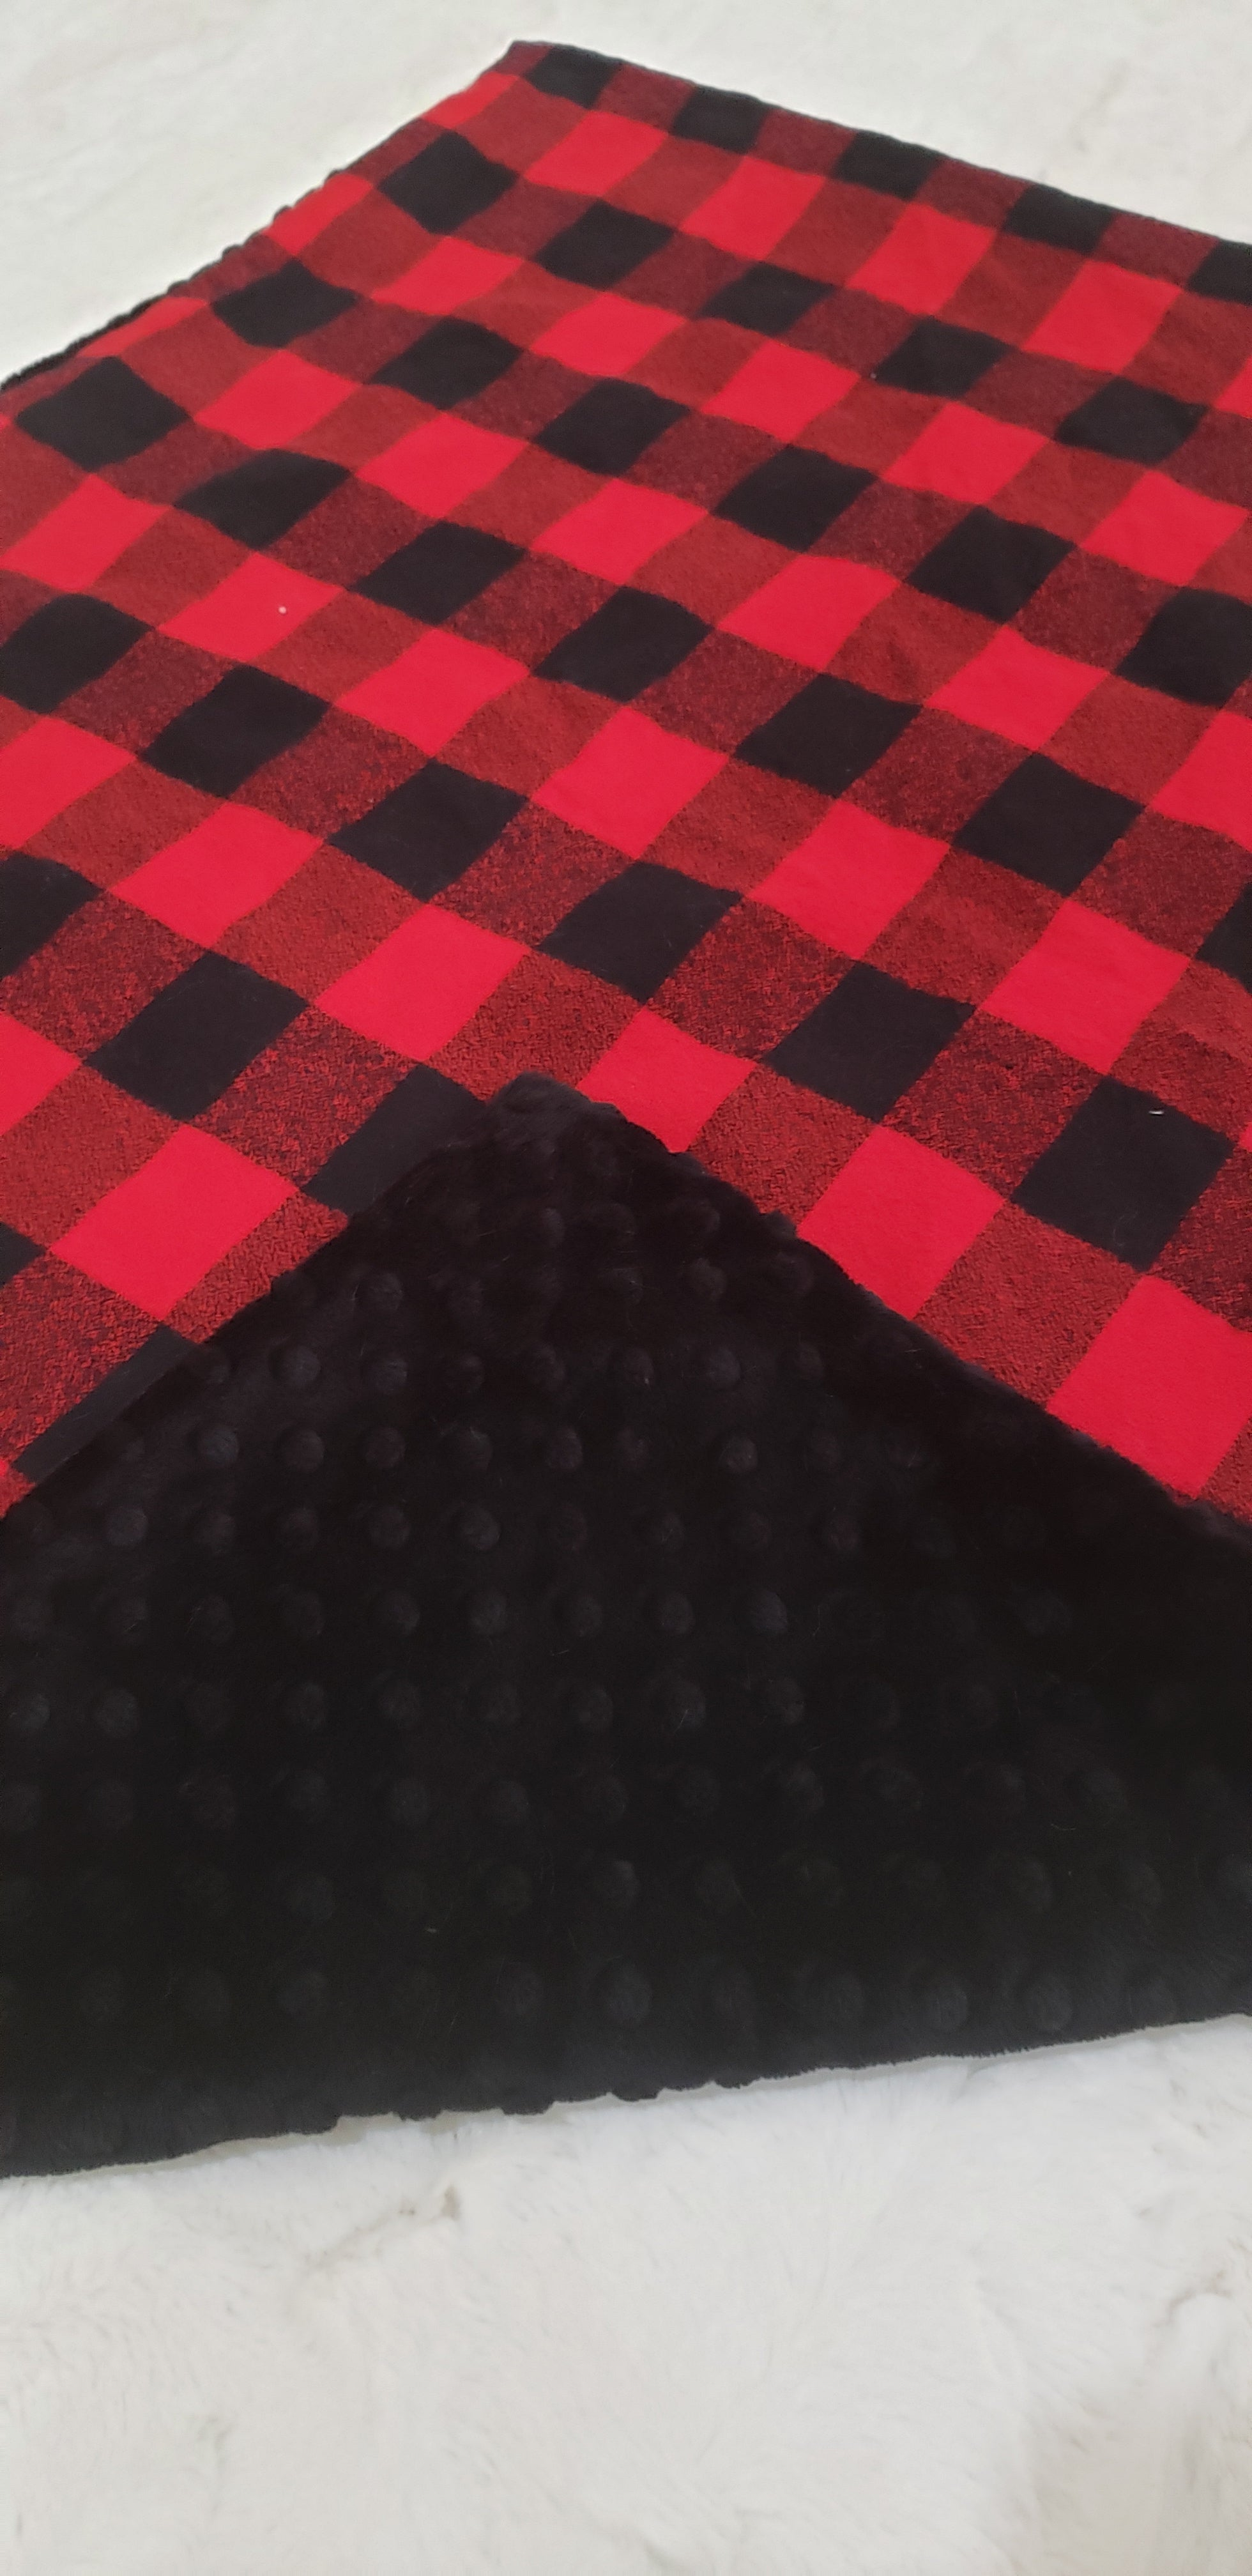 Red Plaid Blanket